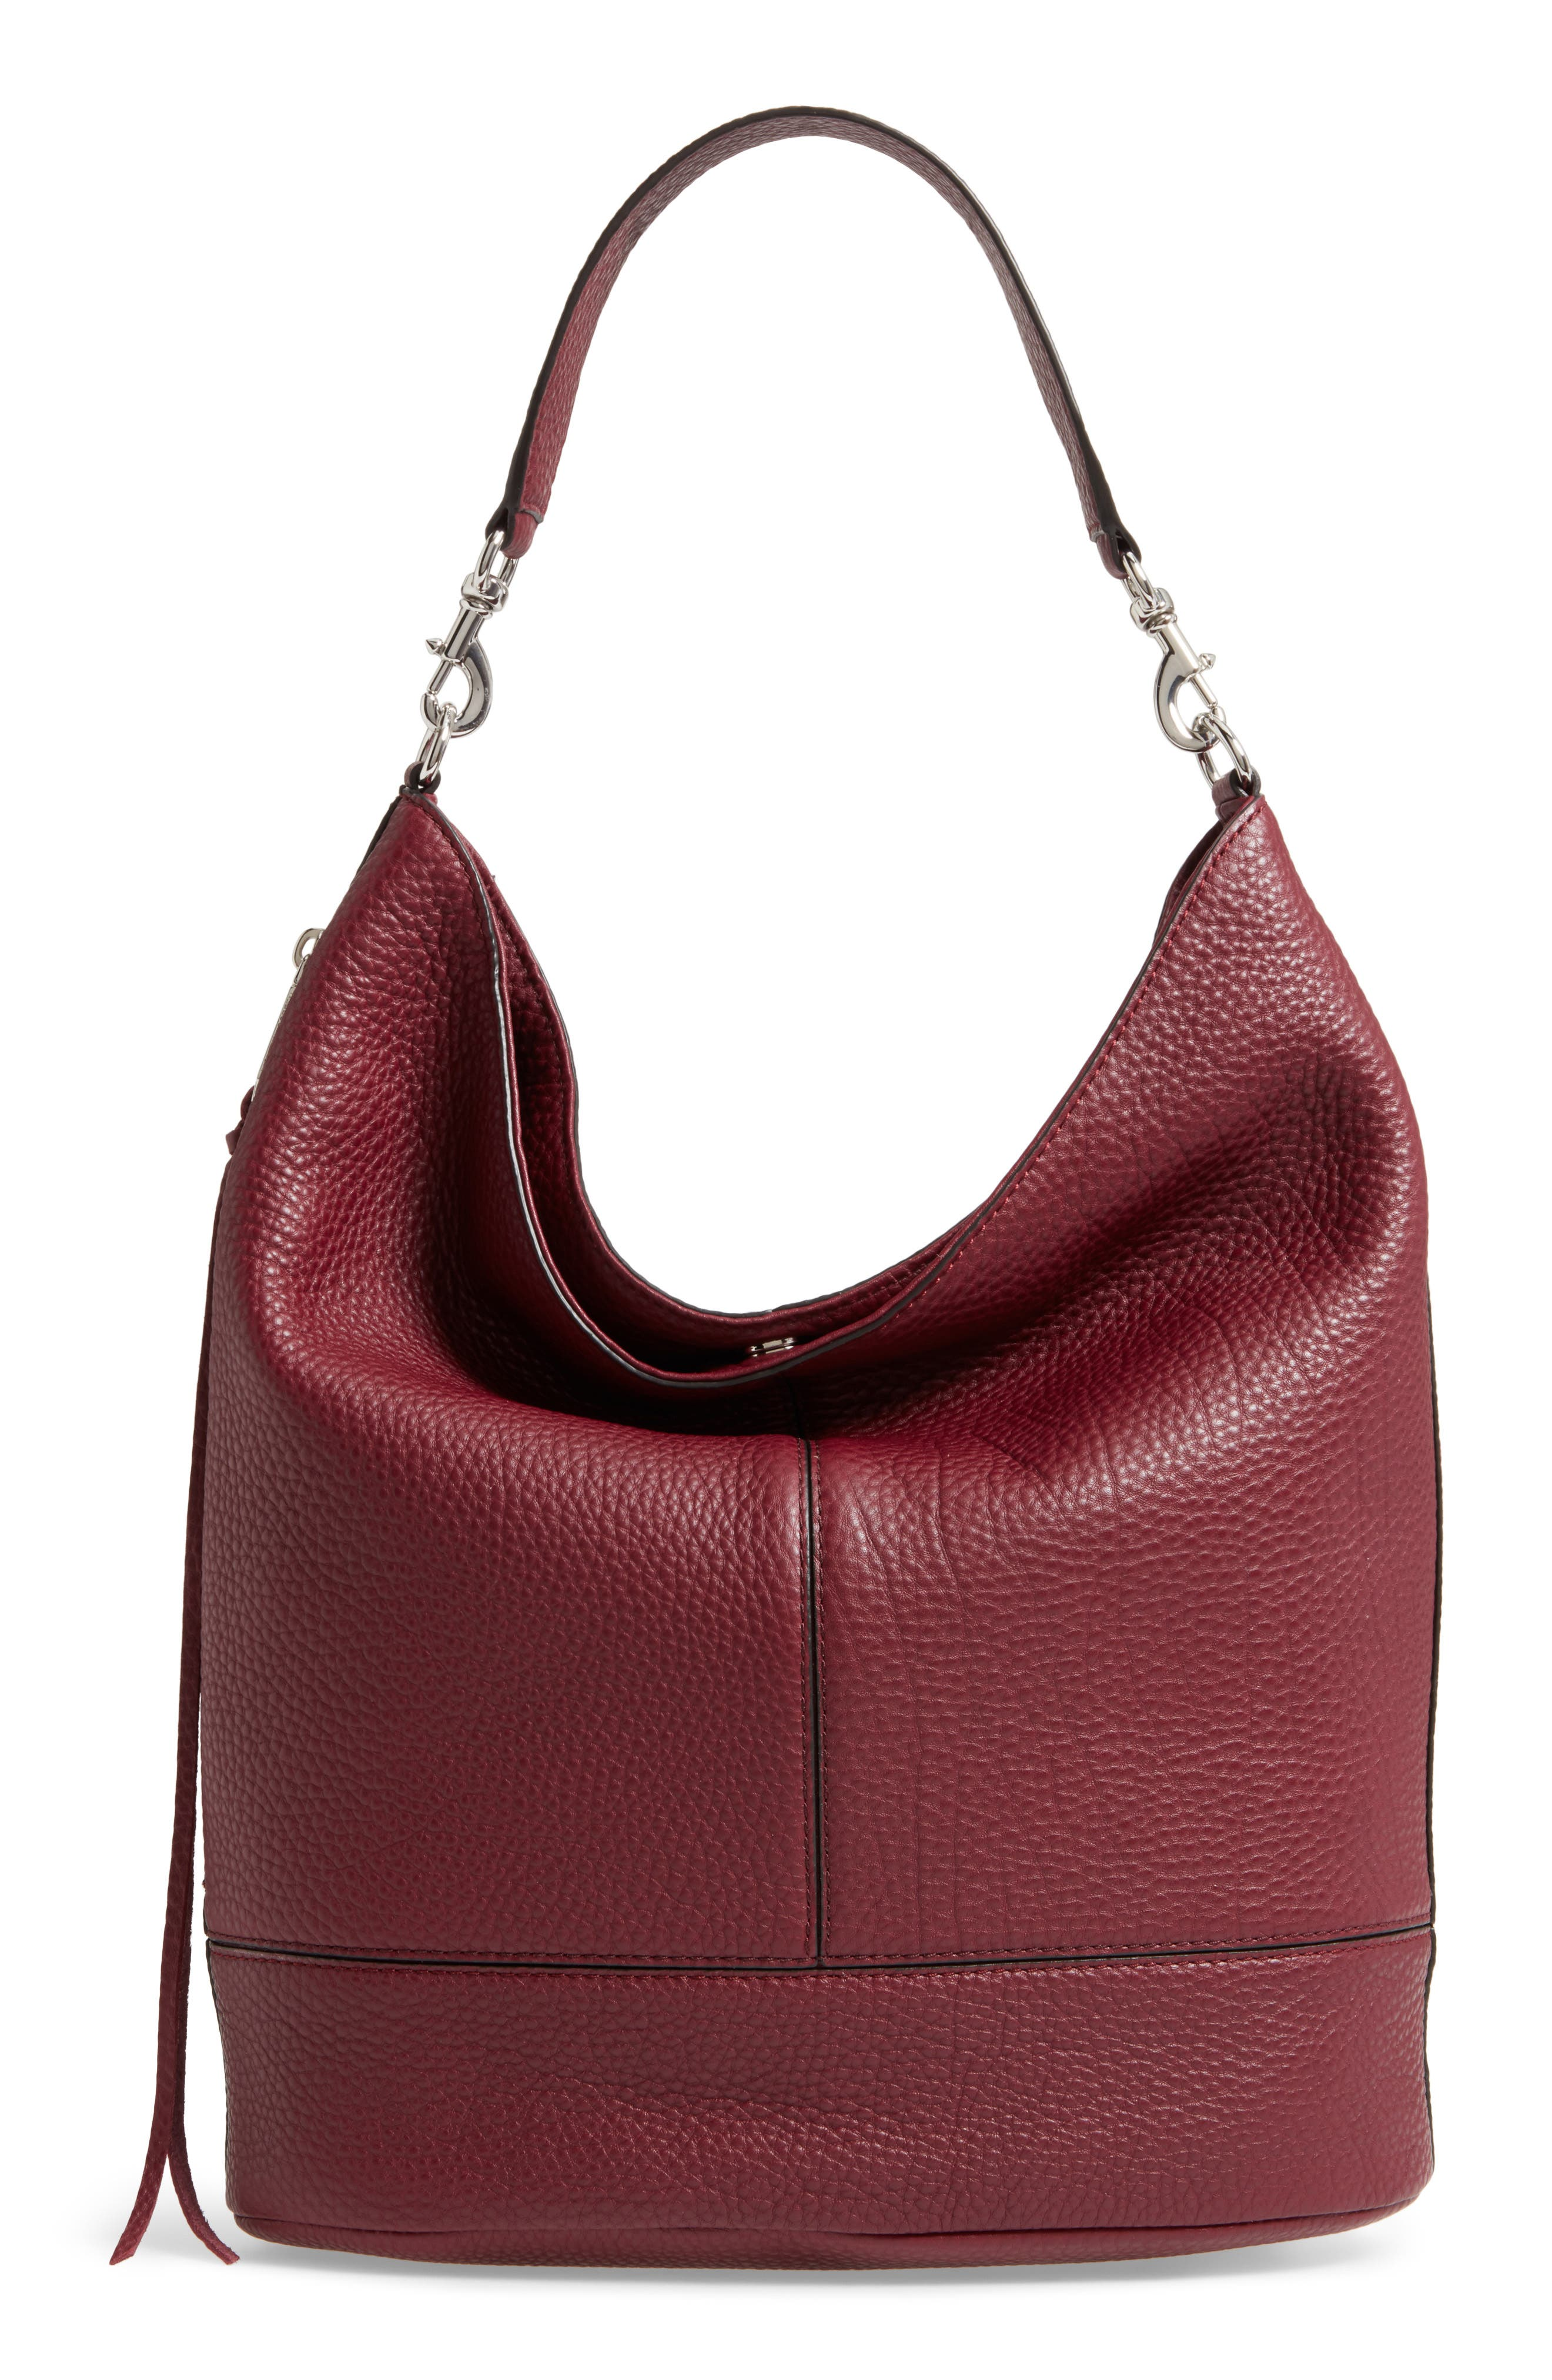 REBECCA MINKOFF Large Star Gazer Hobo